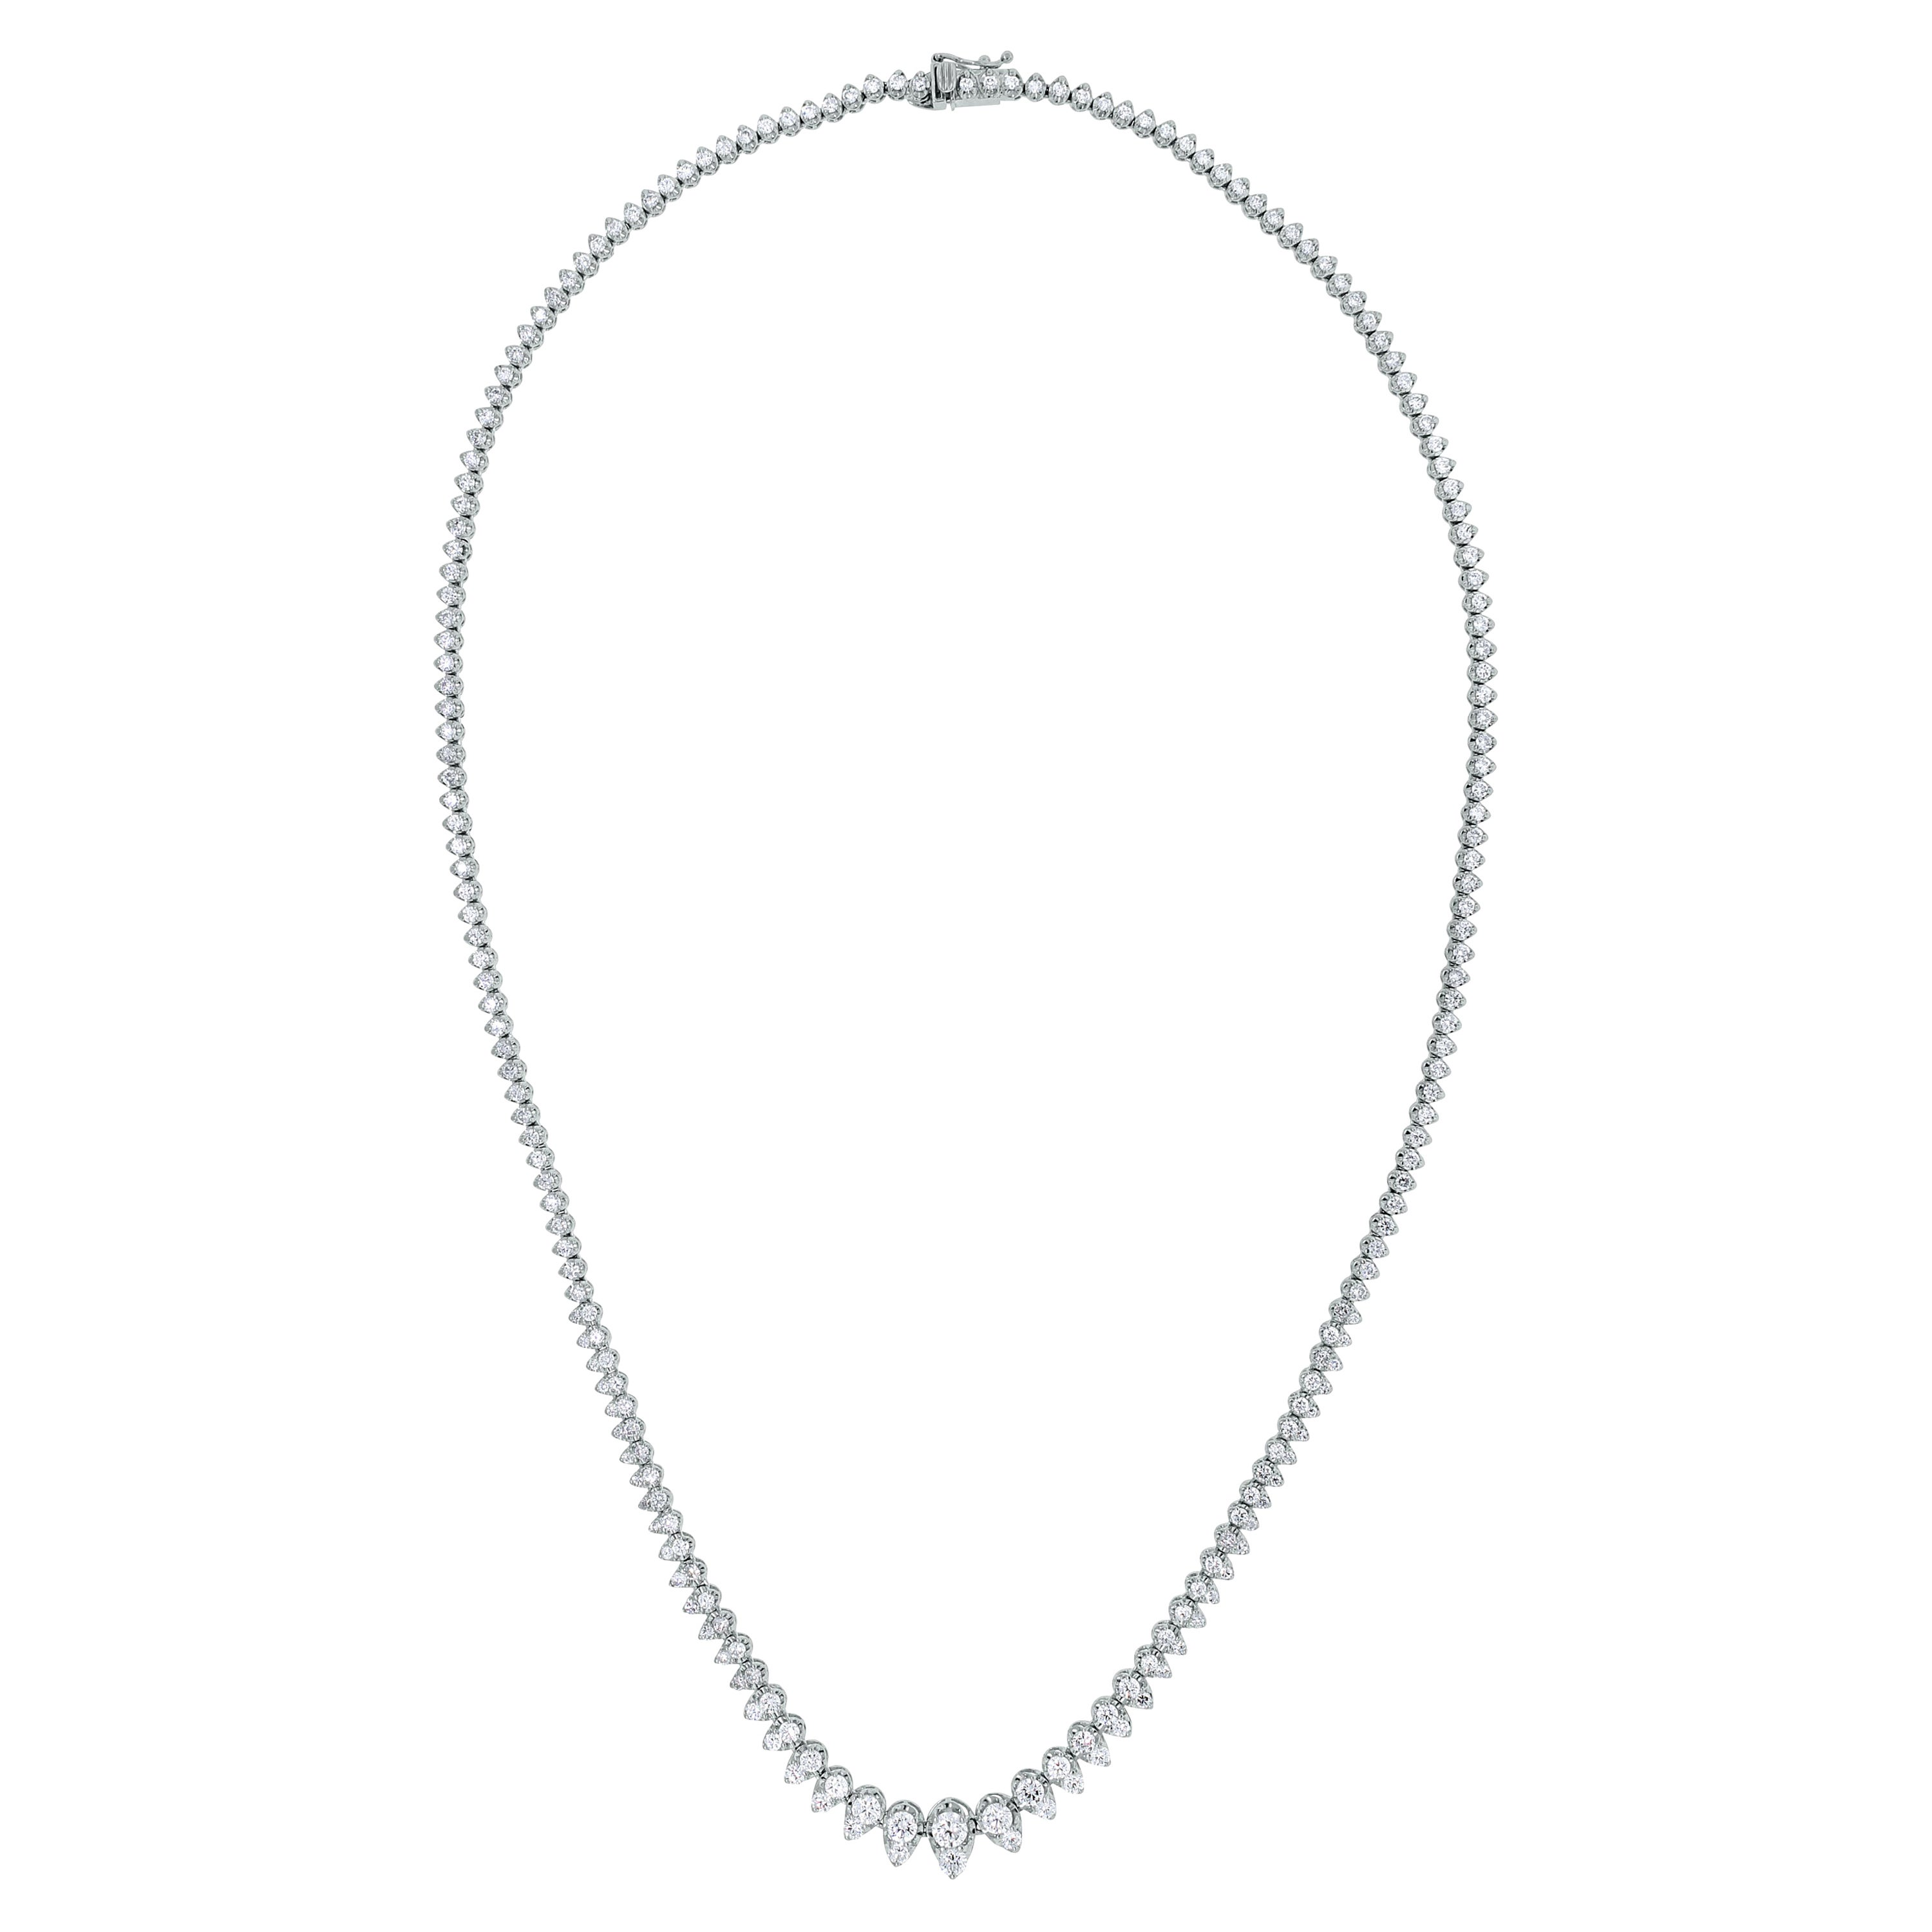 Beauvince Graduated Diamonds Pears Tennis Necklace in White Gold